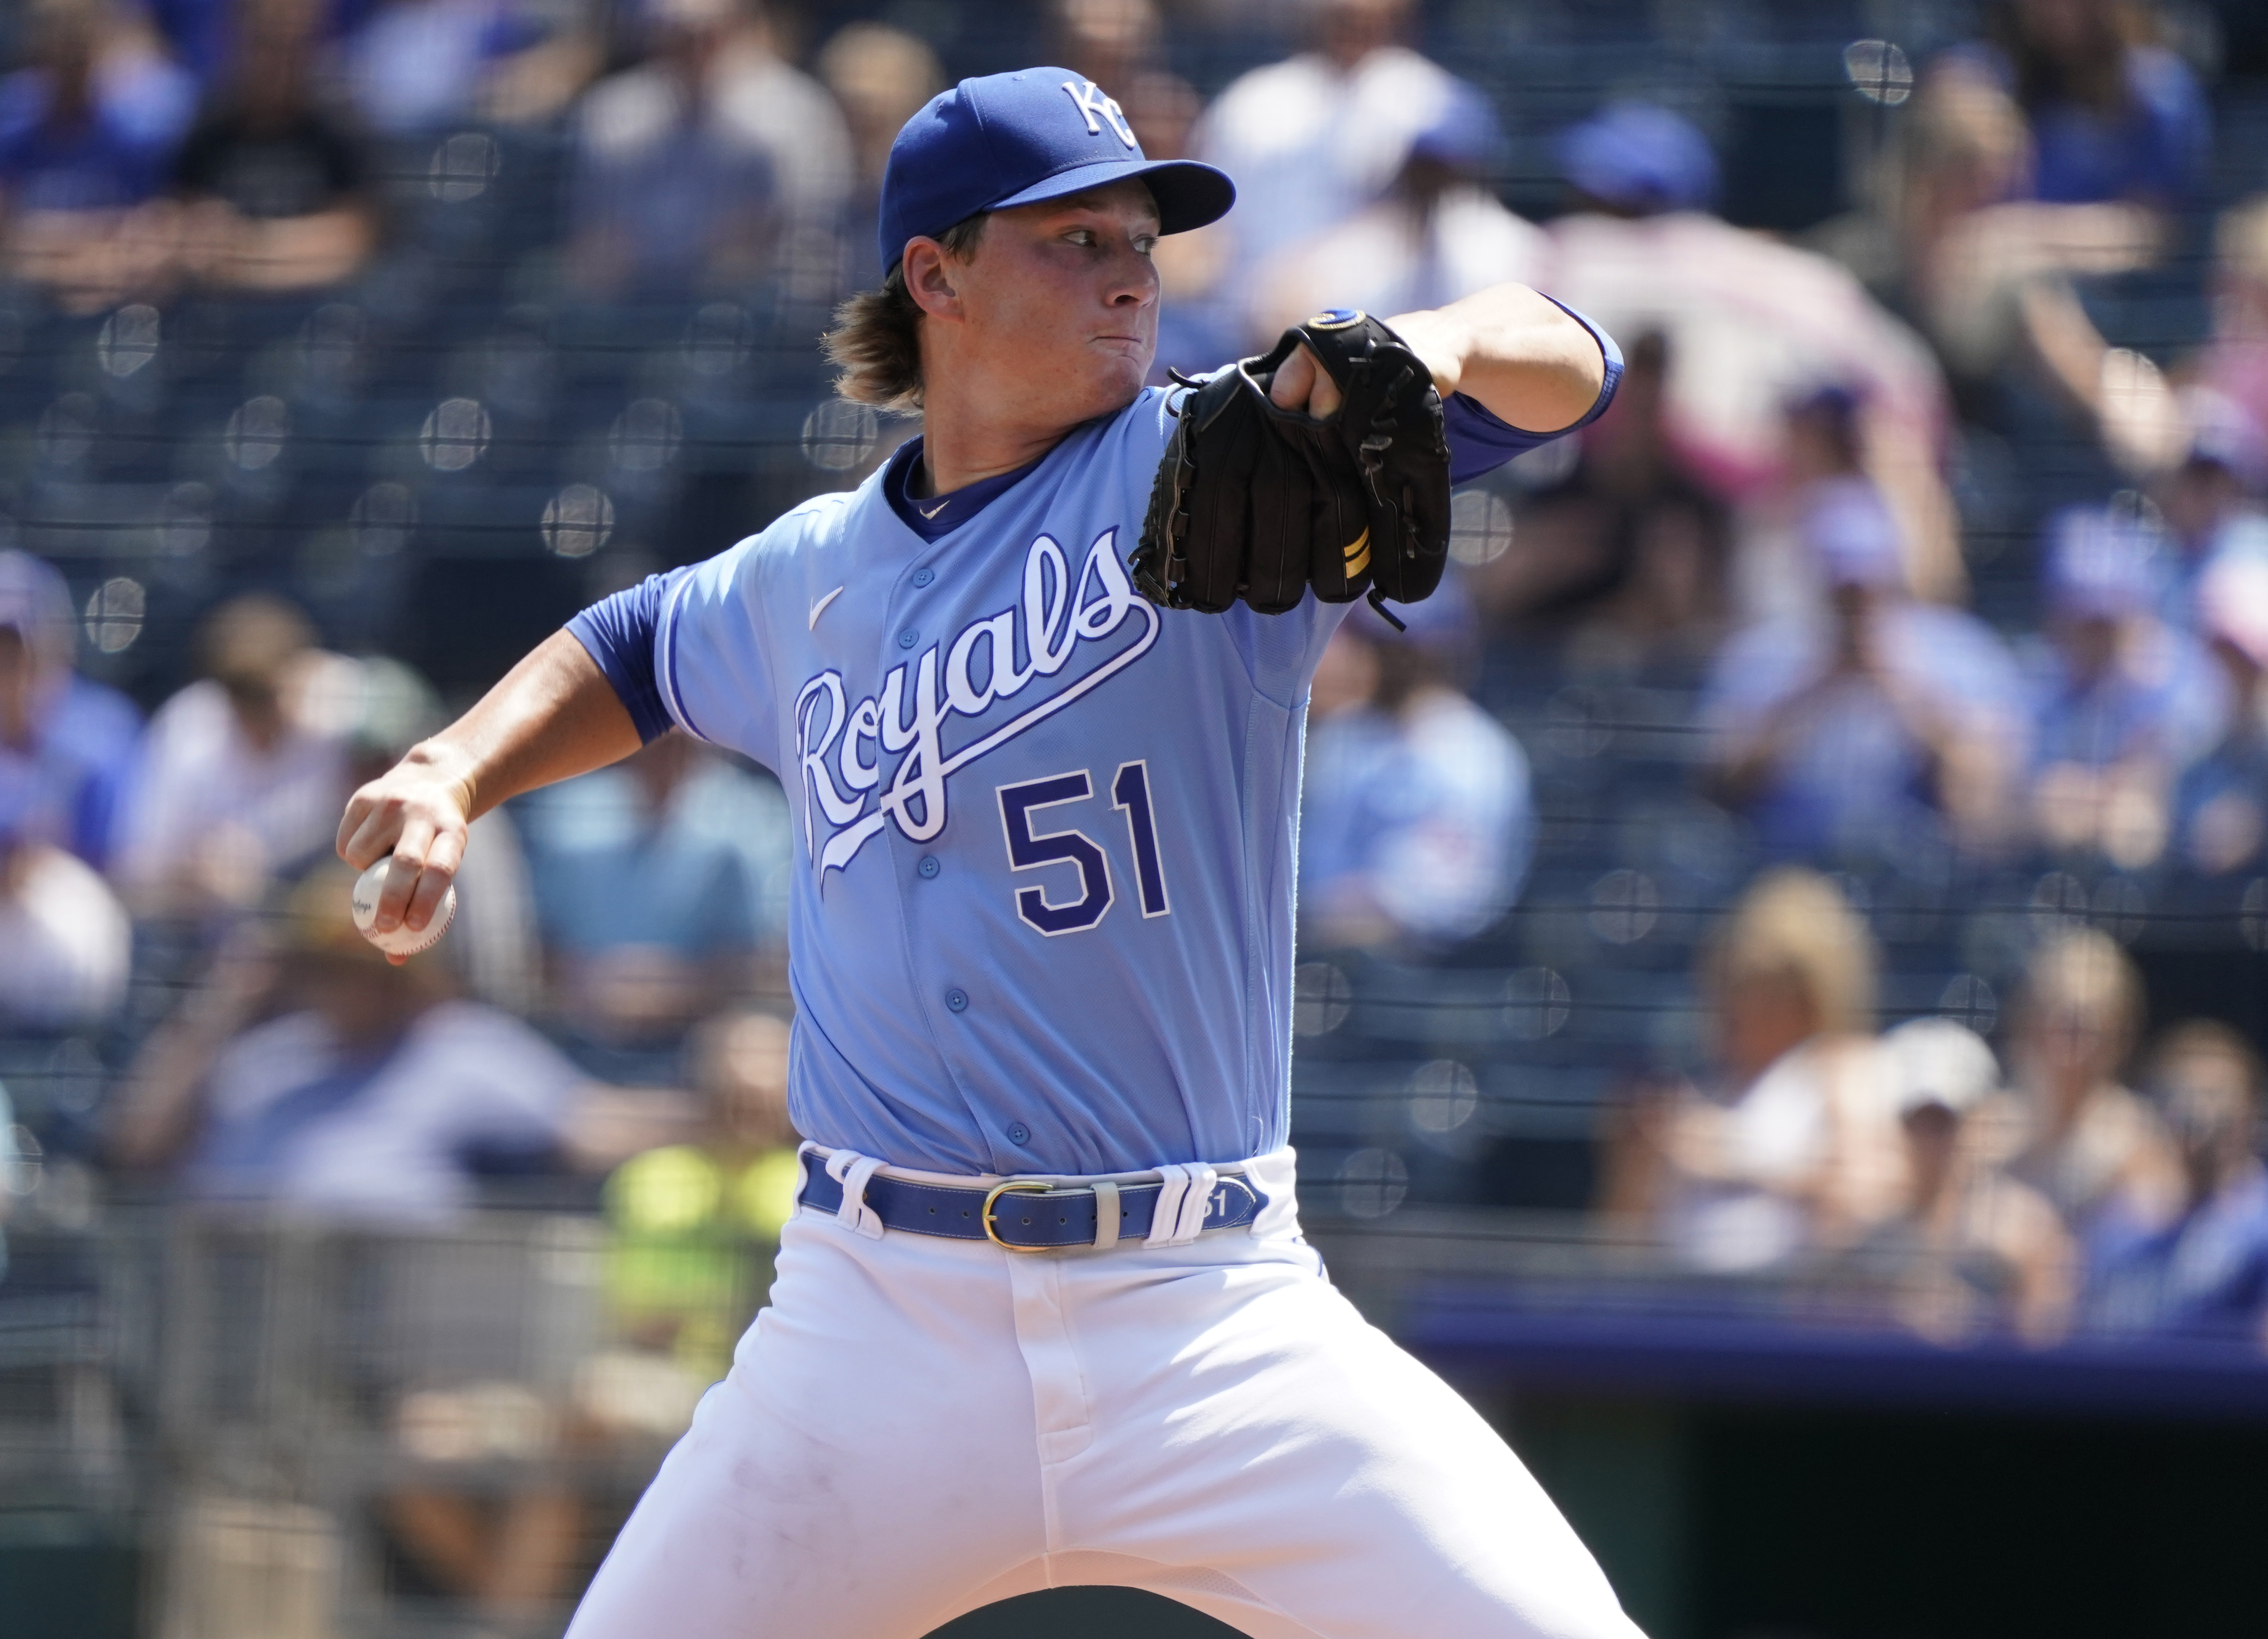 Brady Singer # 51 of the Kansas City Royals throws in the first inning against the New York Yankees at Kauffman Stadium on August 11, 2021 in Kansas City, Missouri.